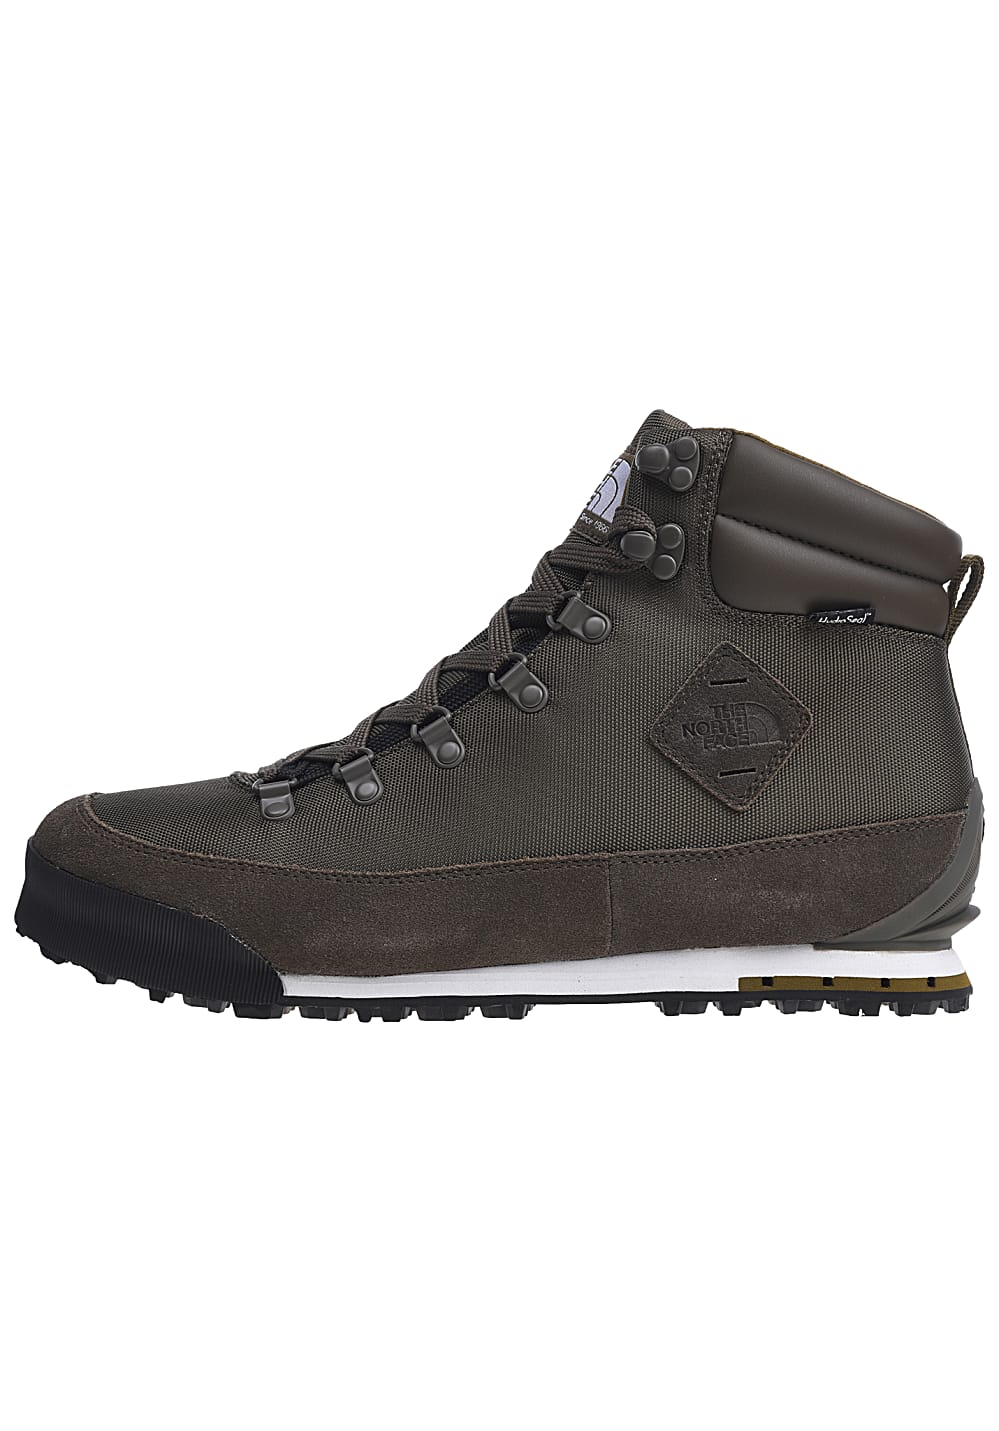 a2aa9b68f THE NORTH FACE Back-2-Berkeley Nl - Hiking Shoes for Men - Green ...